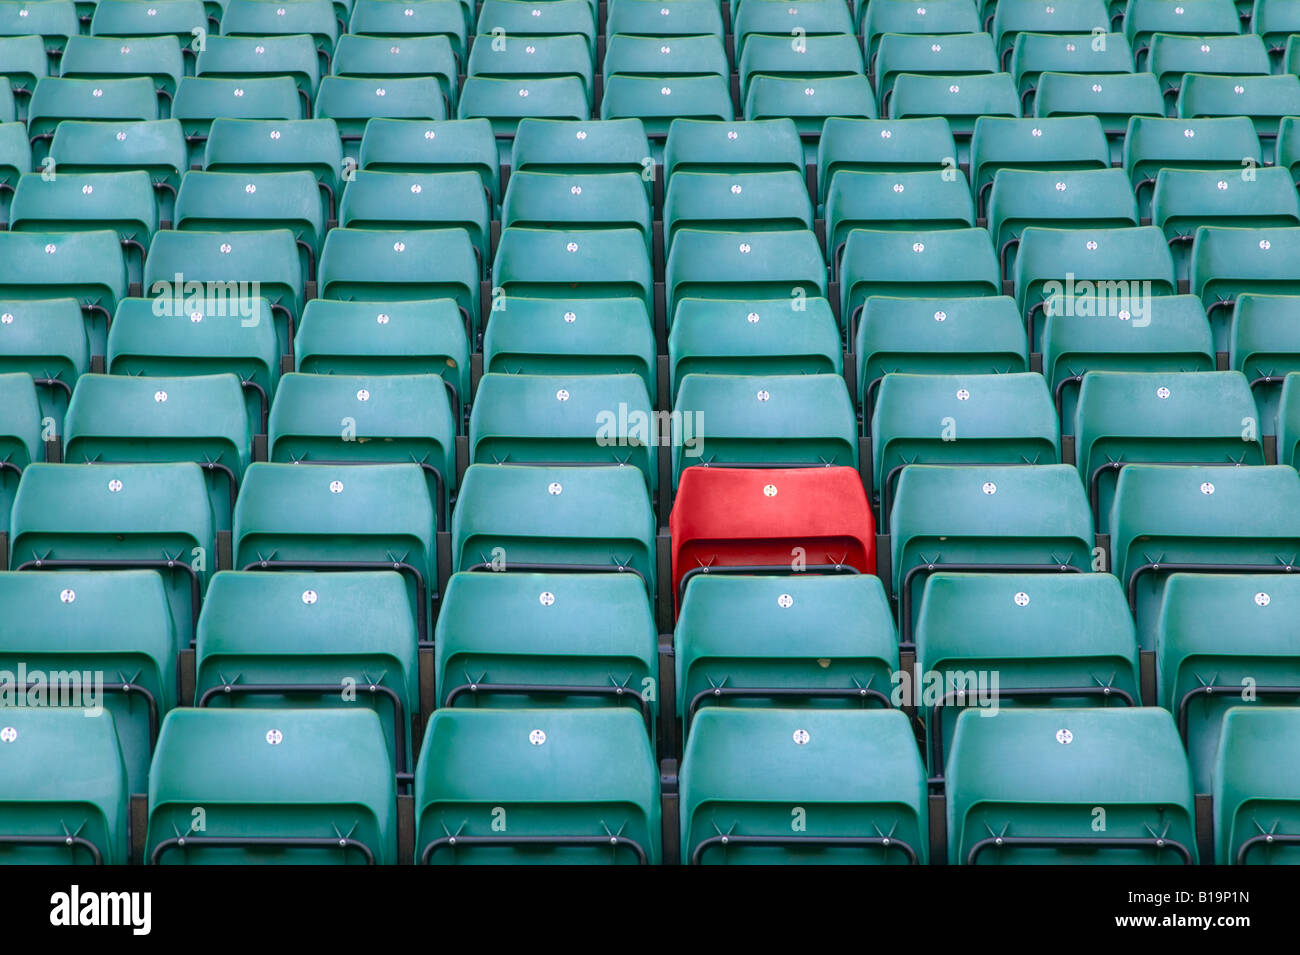 One red seat amongst rows of green seats in a sports stadium - Stock Image